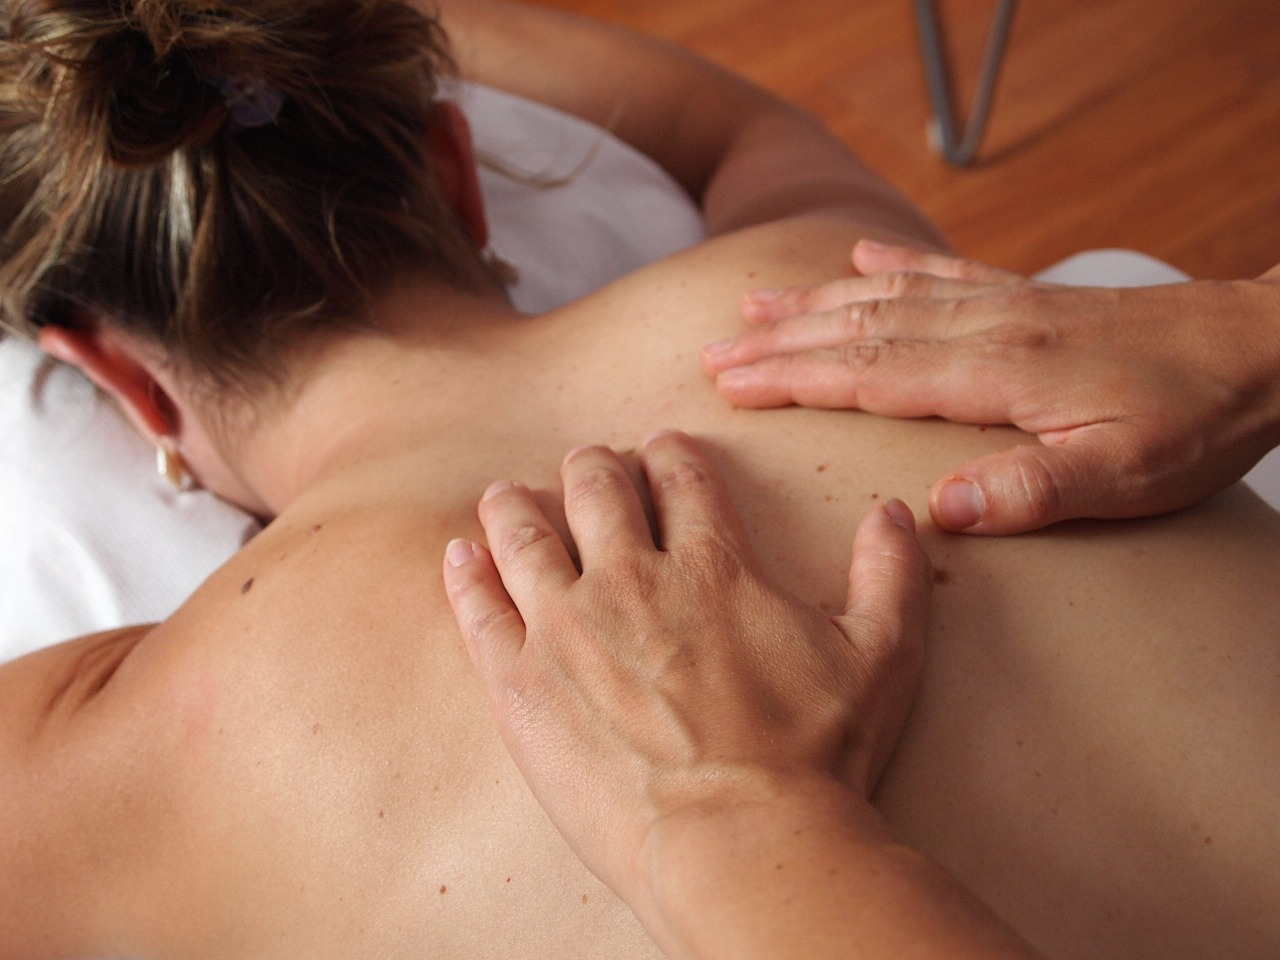 injury related massage therapist